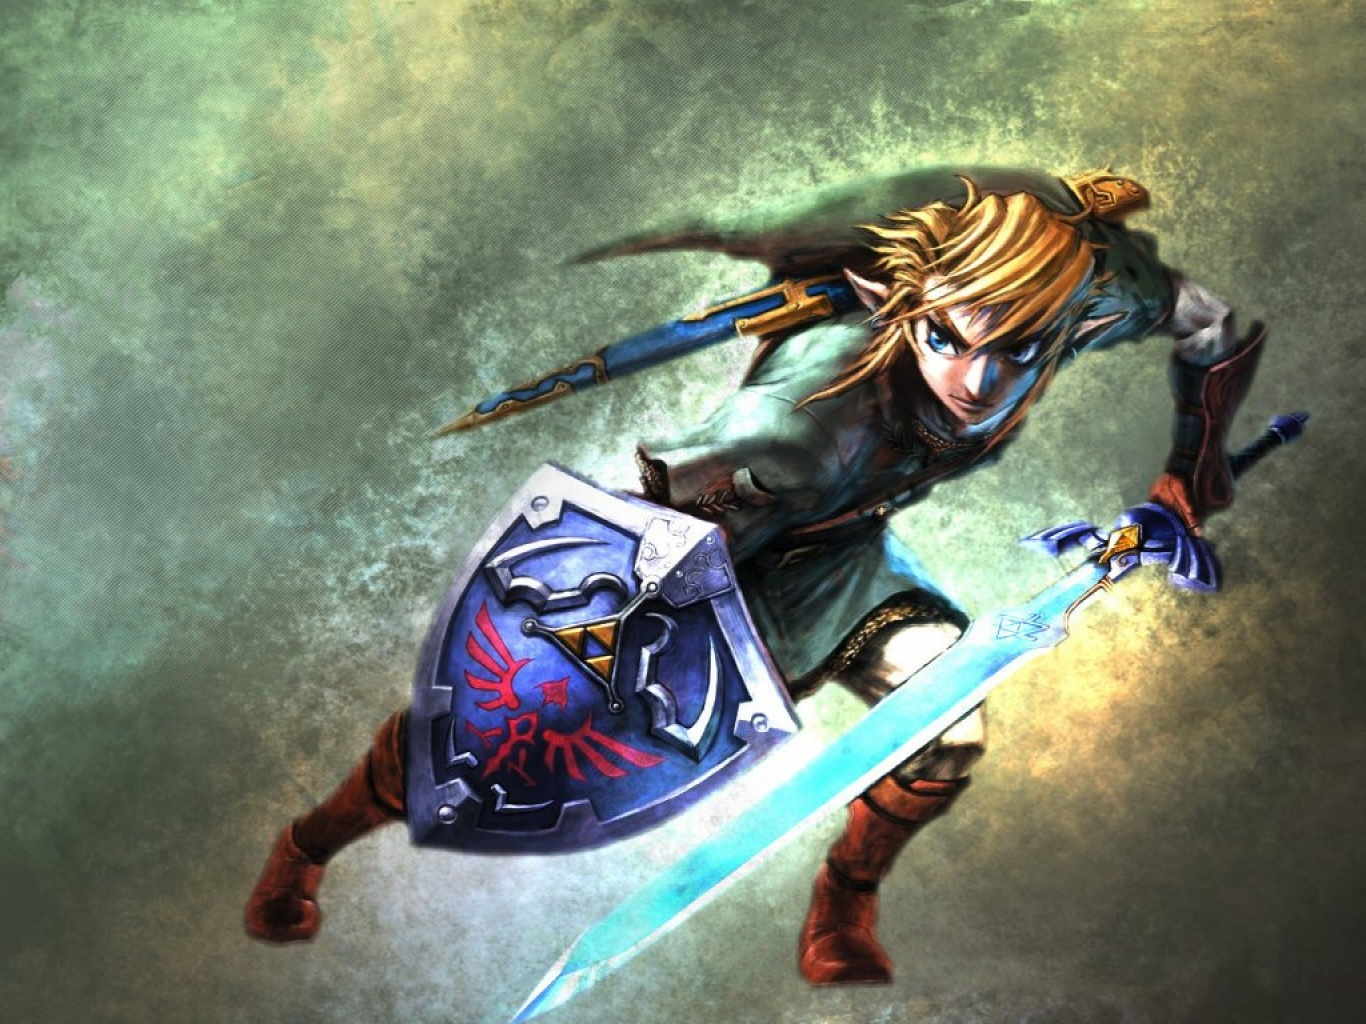 Wallpaper PSP Wallpaper Zelda   Zelda Twilight Princess Wallpapers 1366x1024